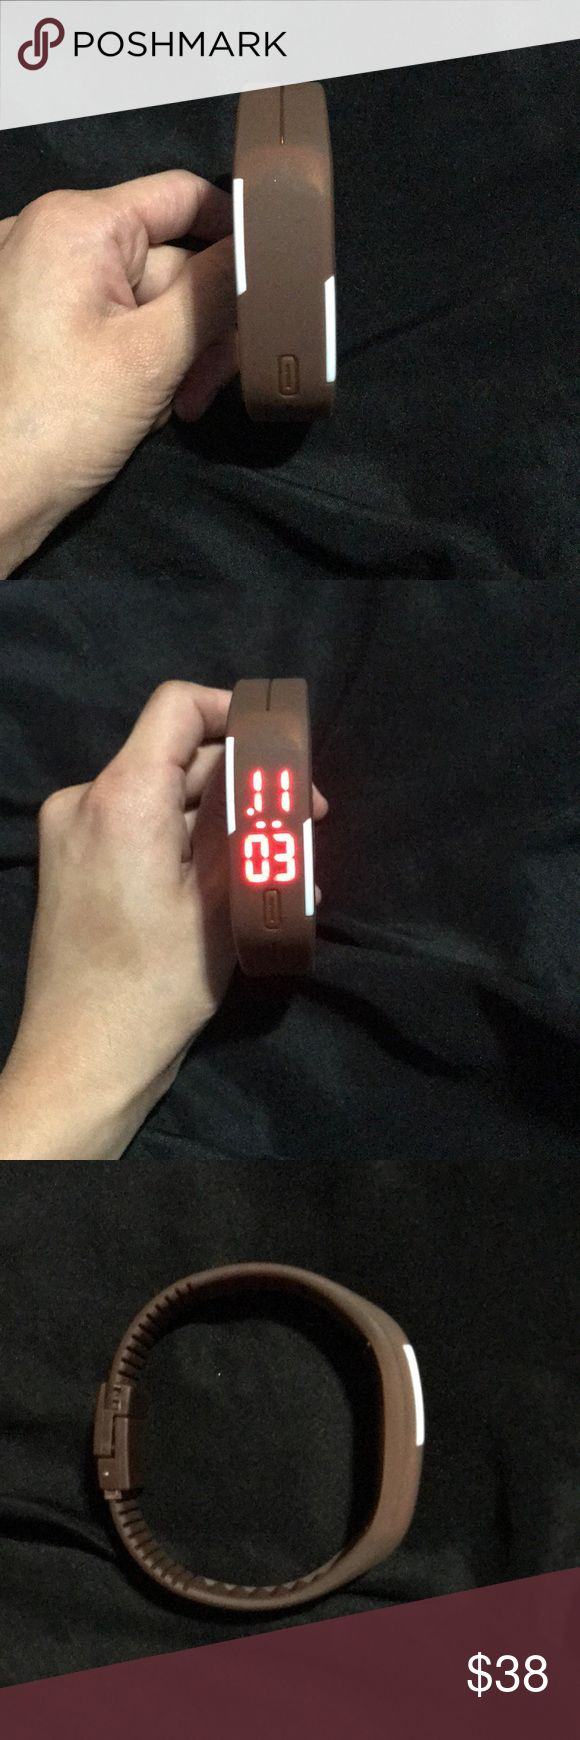 Rubber digital watch The red LED energy saving display. •Click The Button, Numbers Appears, Press The Button For About Four Seconds. When The Red Numbers Blink, It Enters The Set Up Mode. •Slowly Press The Button To Adjust Time. •After Setting The Current Item, Press The Button Again for Four Seconds To Enter Next Setting. Order Of Setting Values: •Hours, Minutes, Year, Month, And Day. Do Not Press The Button, Settings will save automatically •The bracelet Can be Cut With Scissors if too…